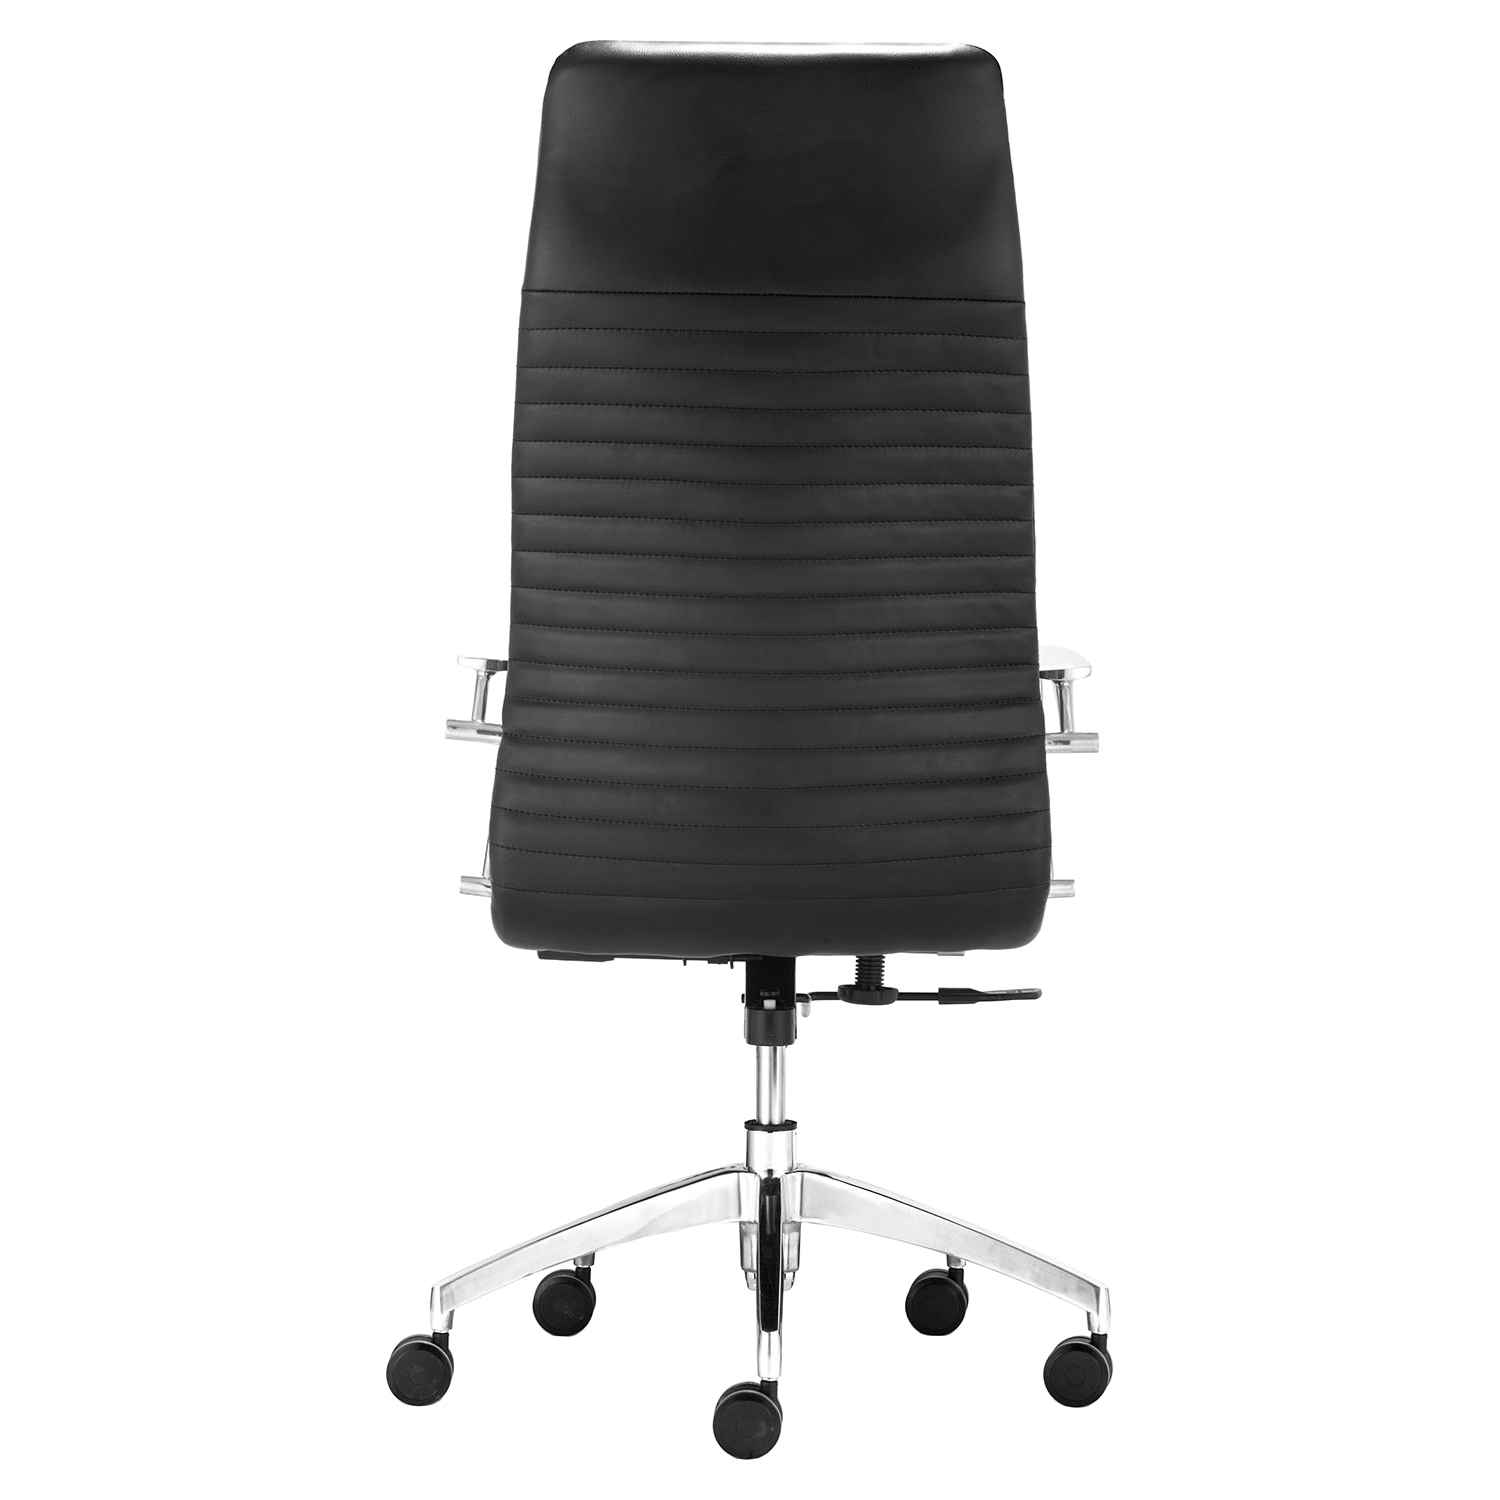 Lion High Back Office Chair - Black - ZM-206160